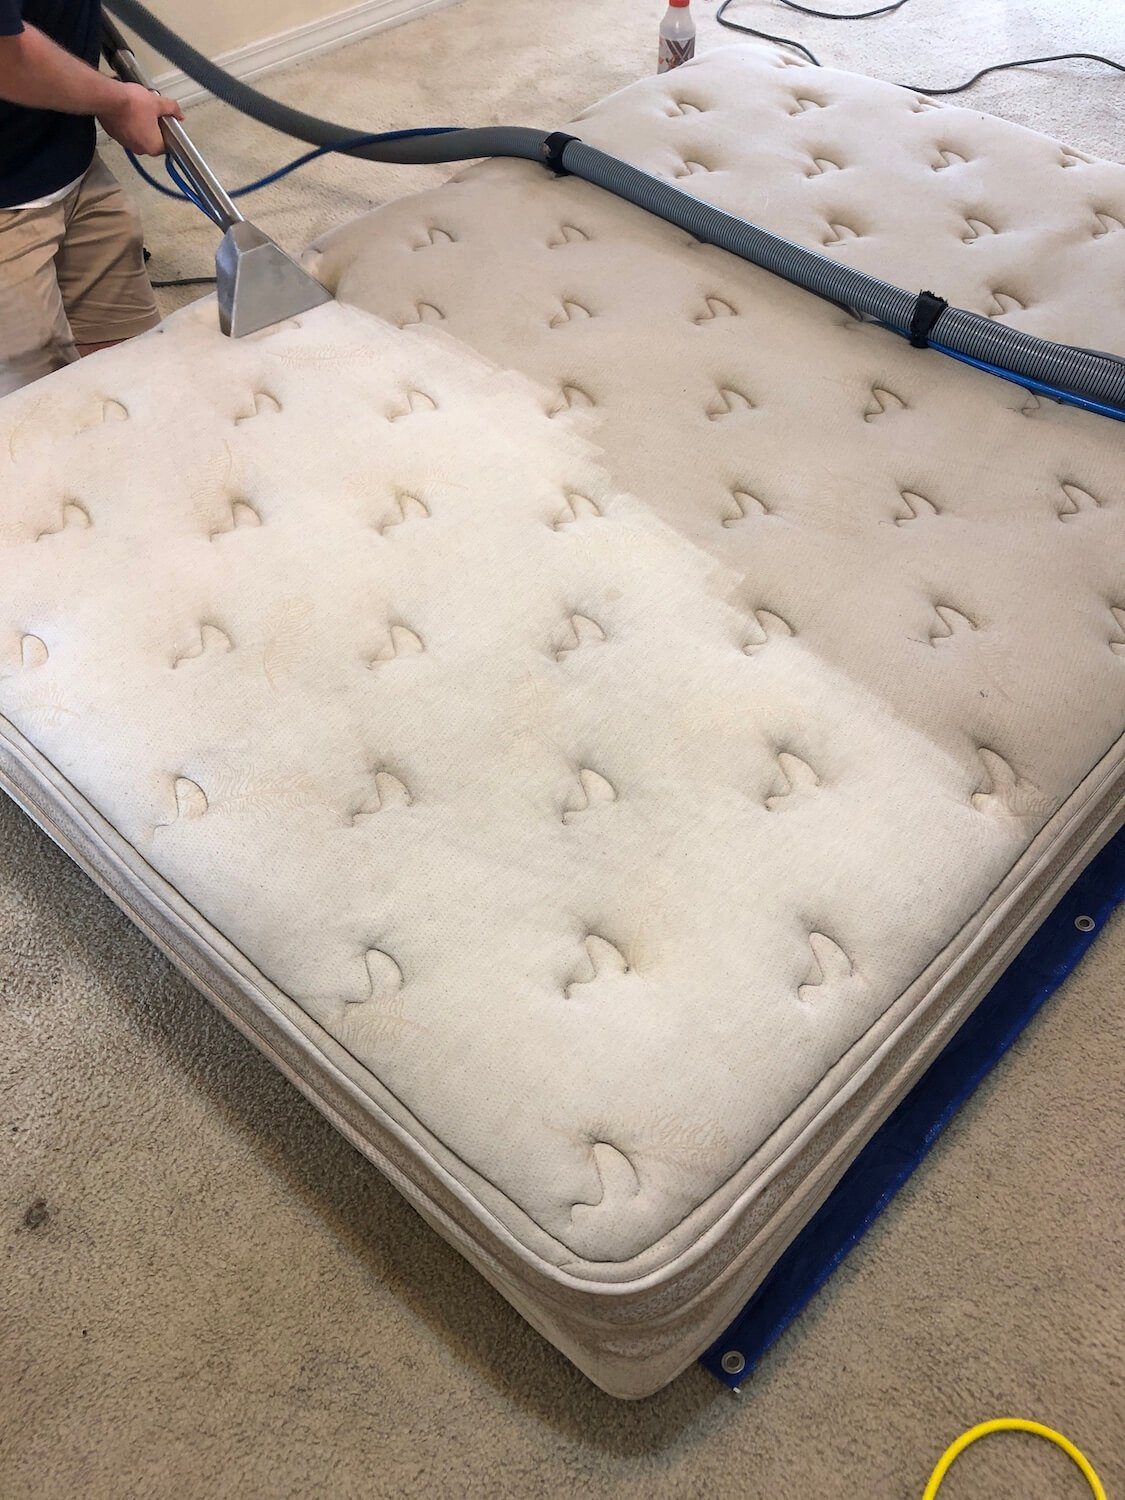 A photo taken during a mattress cleaning